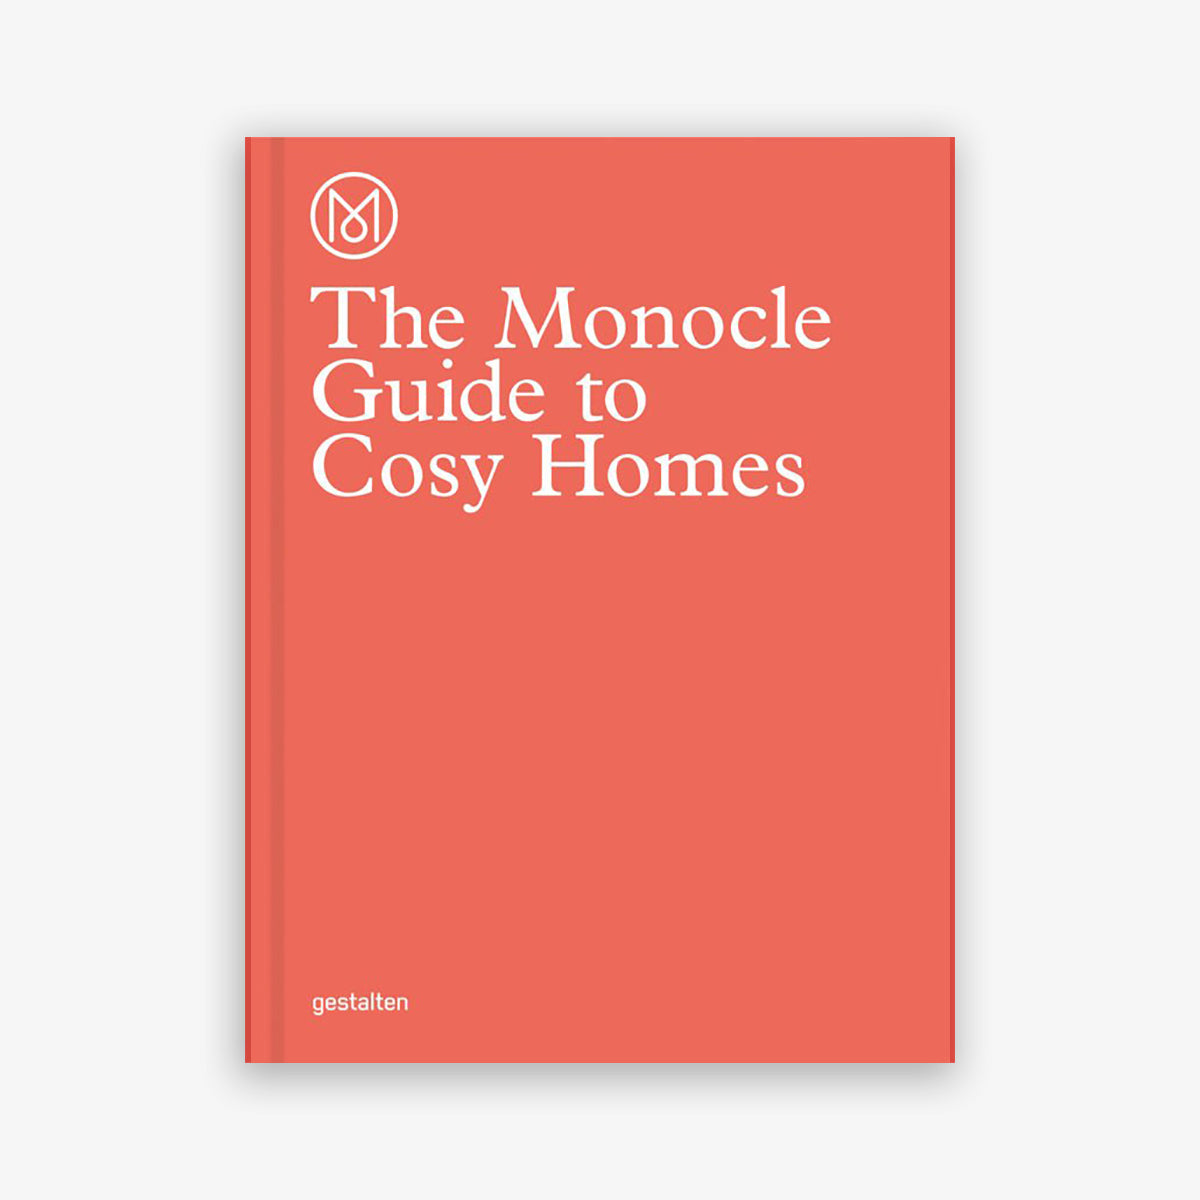 products/Book_The_Monocle_Guide_to_Cosy_Homes.jpg